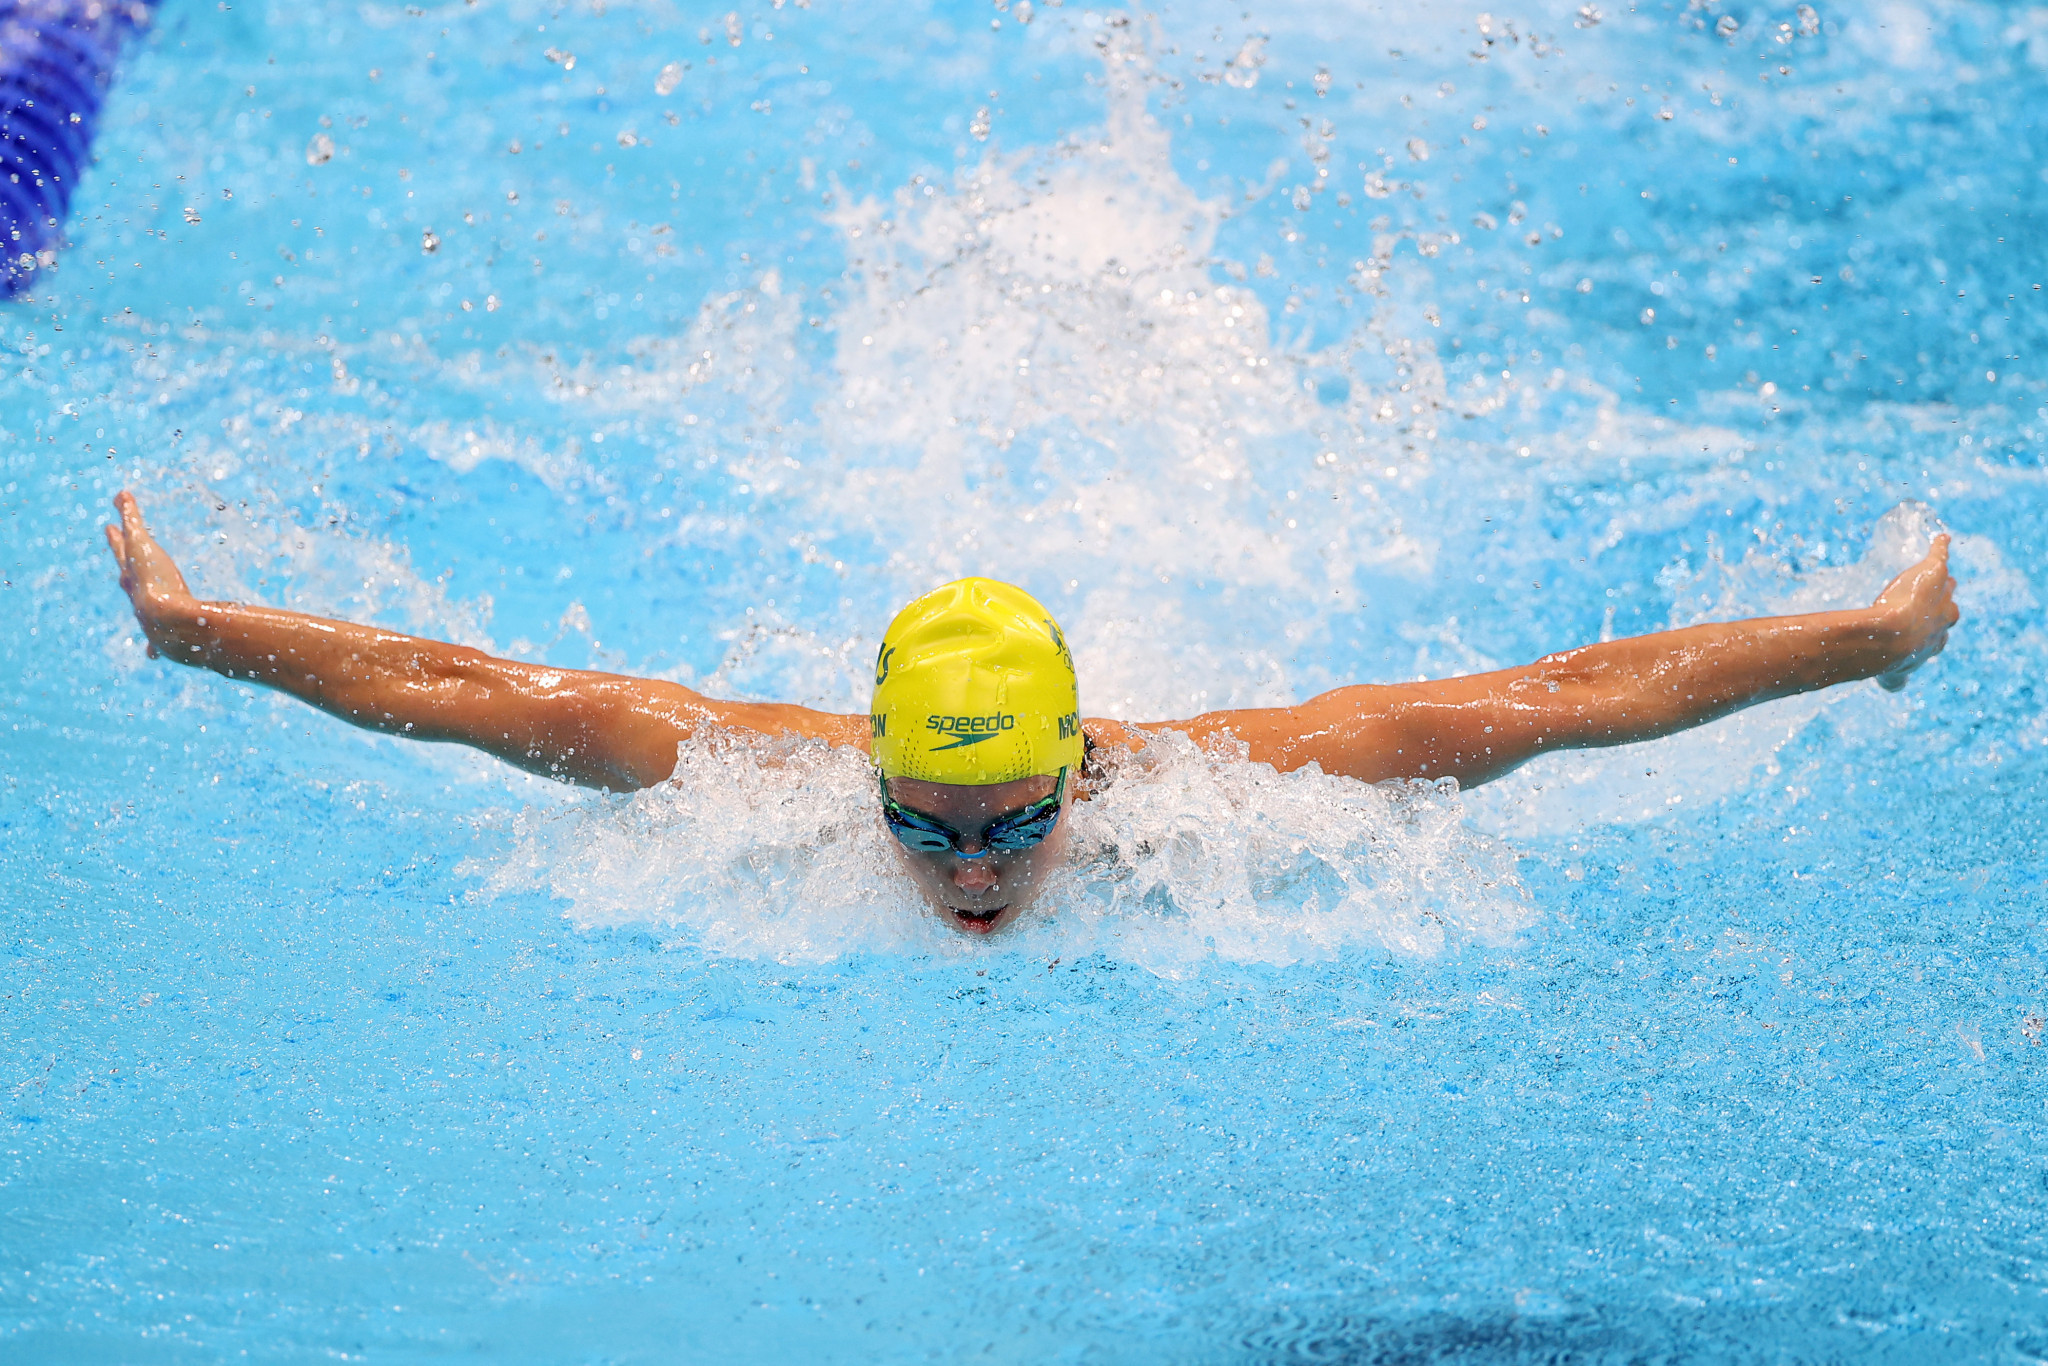 McKeon looking to make a splash in first leg of FINA Swimming World Cup